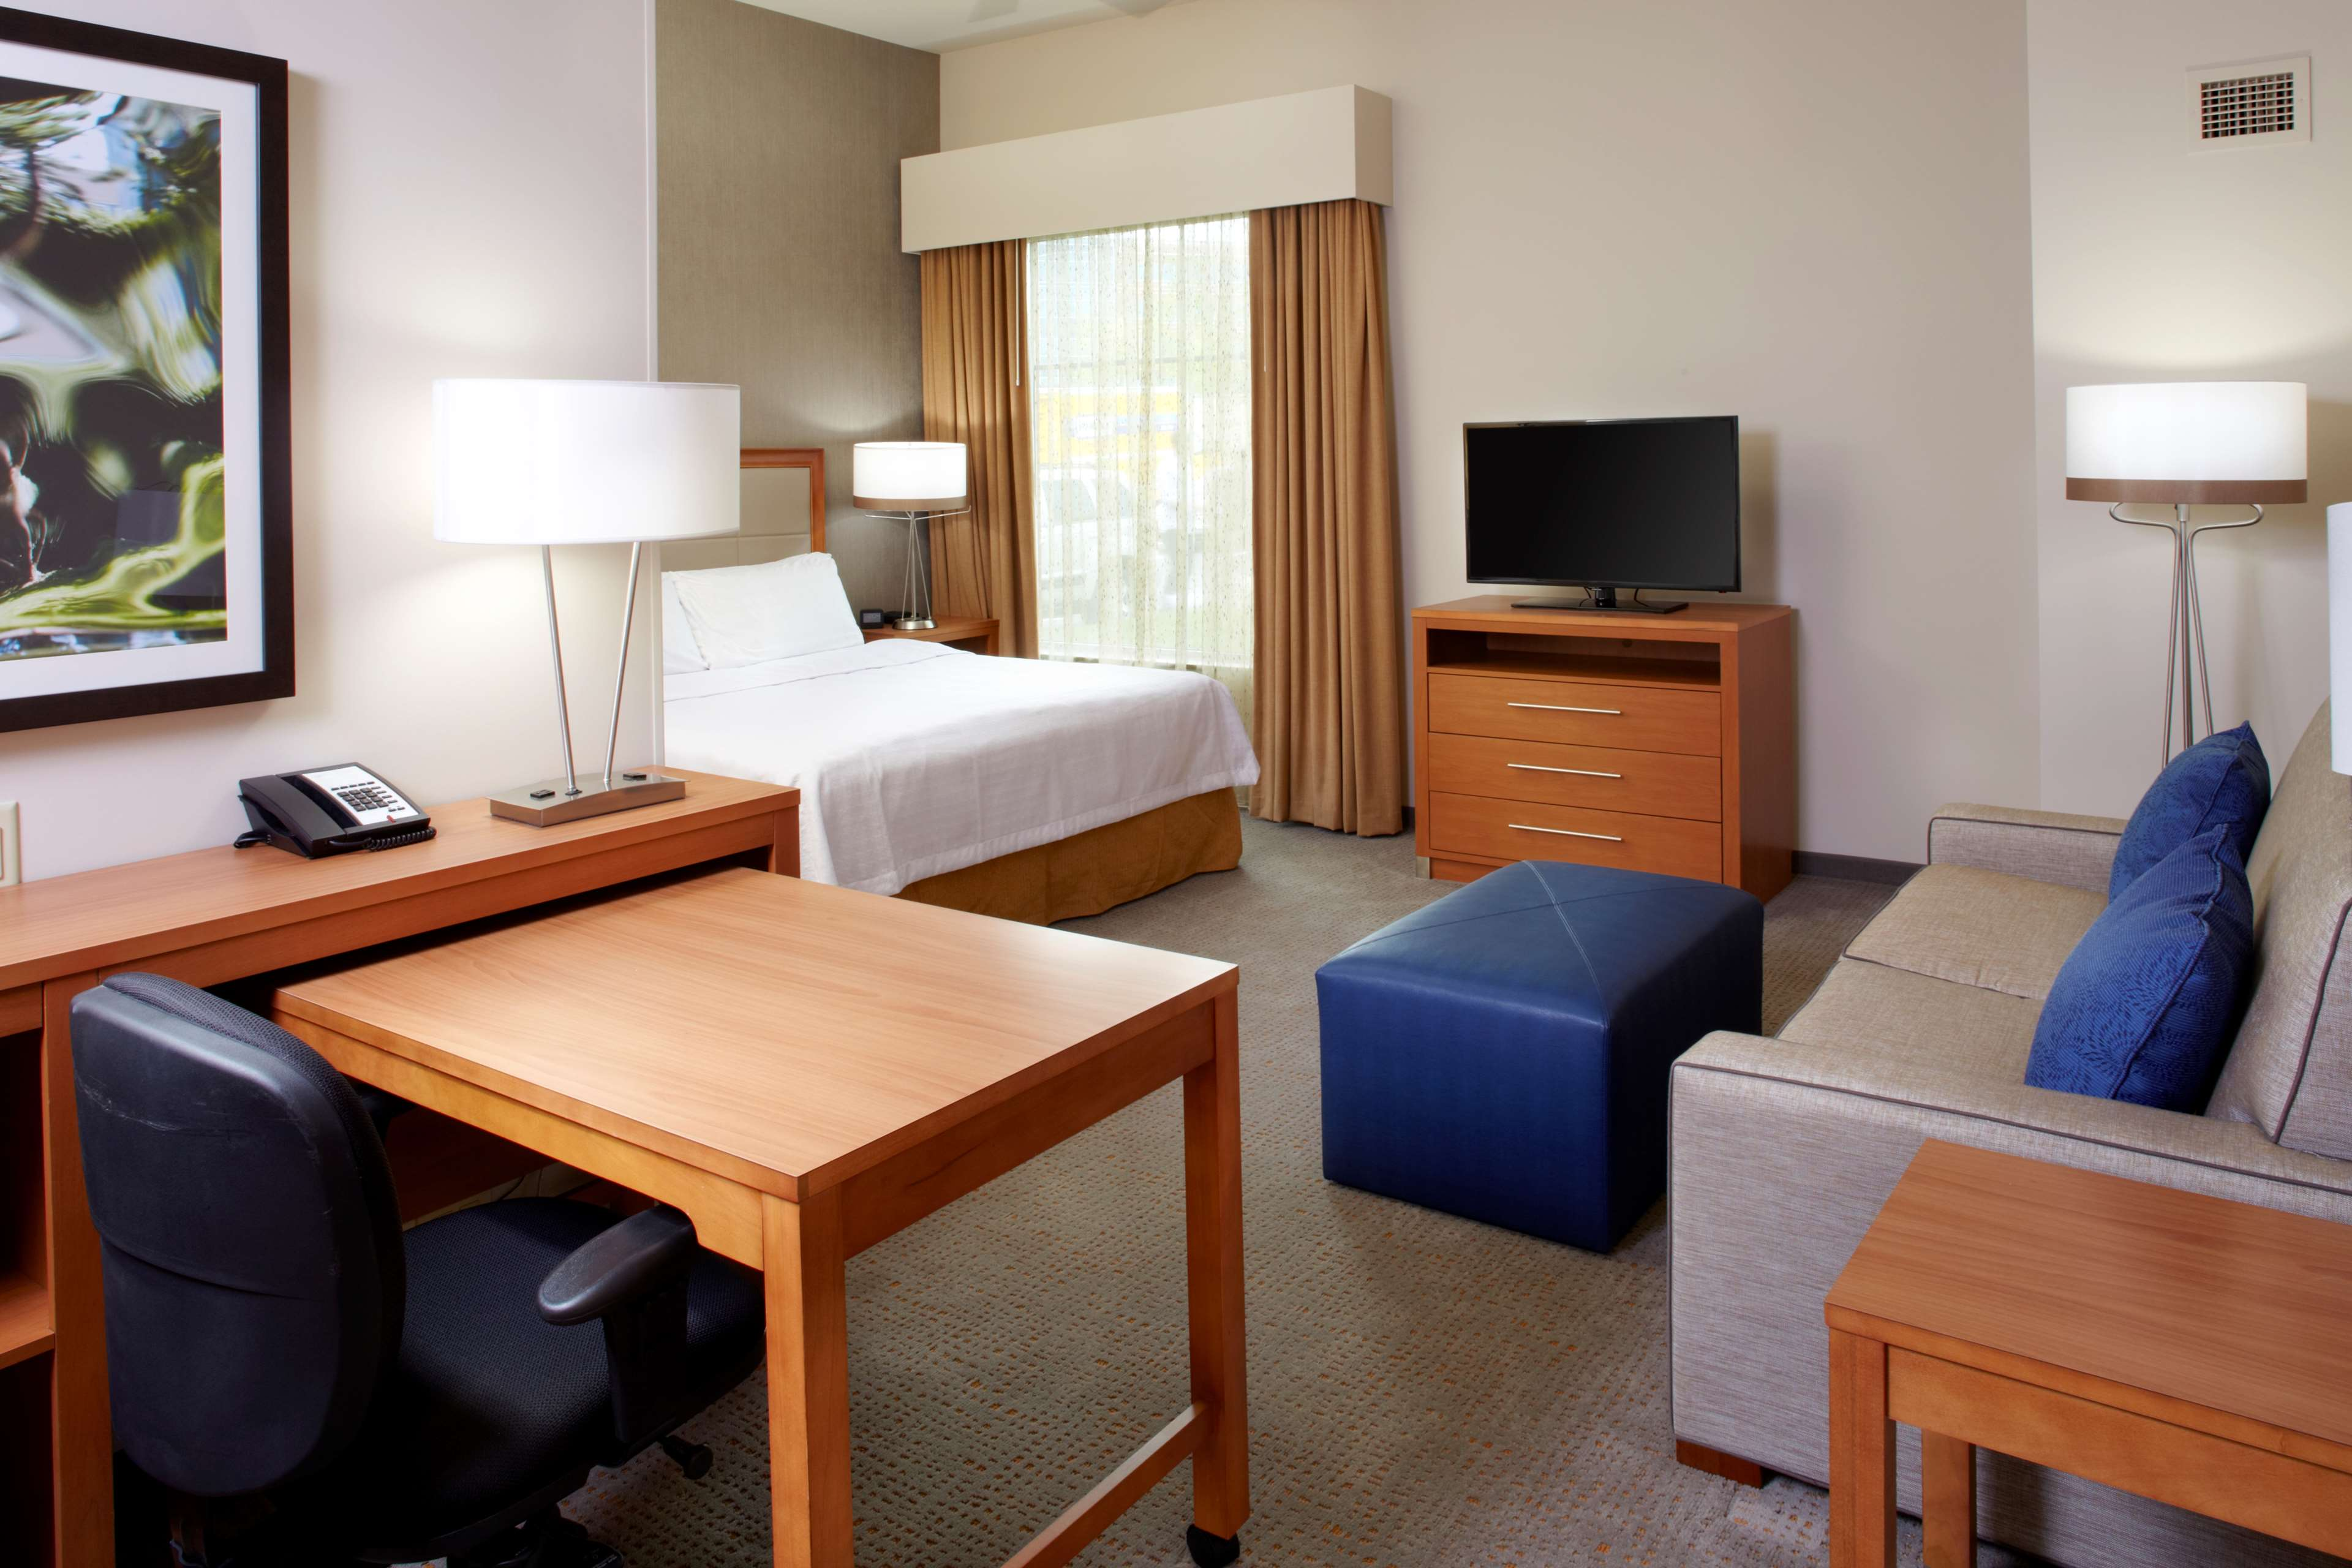 Homewood Suites by Hilton Pittsburgh Airport Robinson Mall Area PA image 22